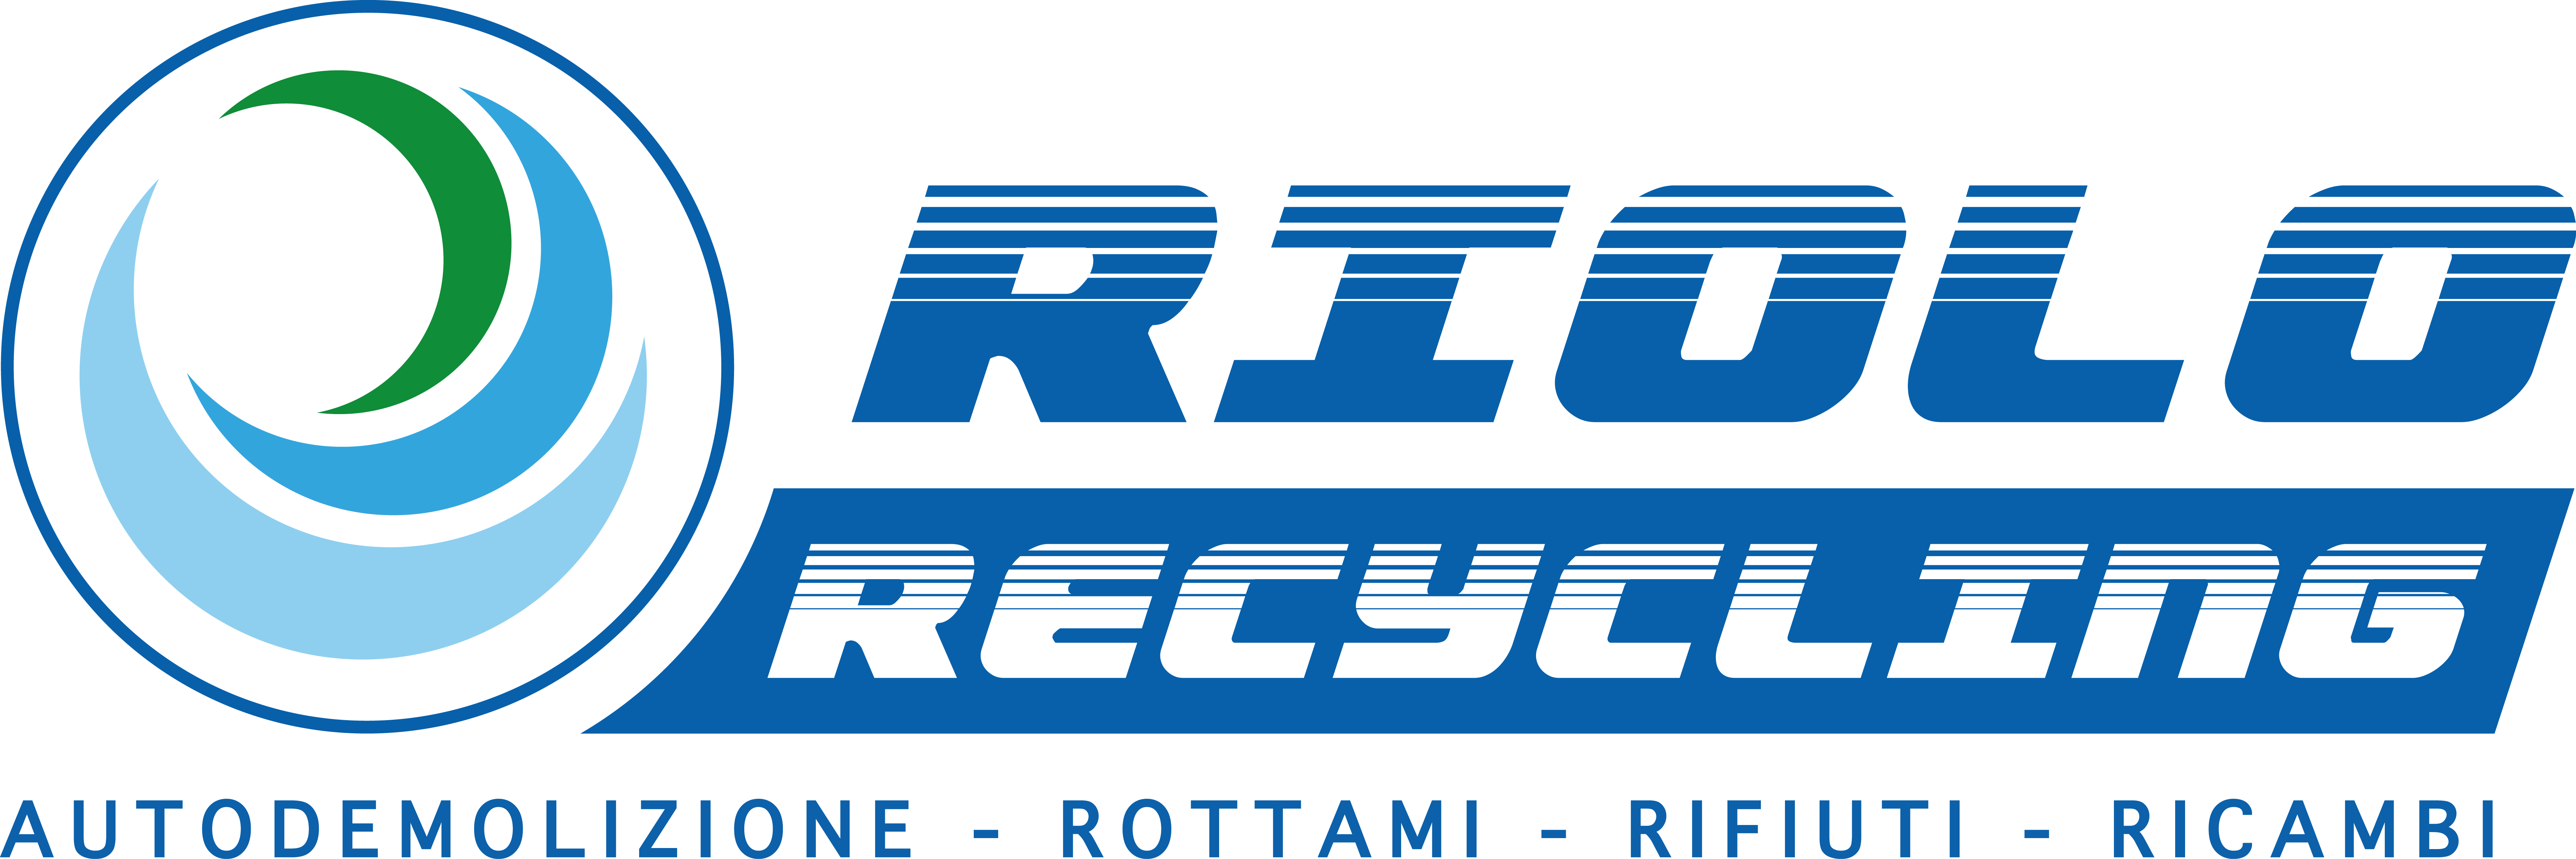 RIOLO RECYCLING SRL